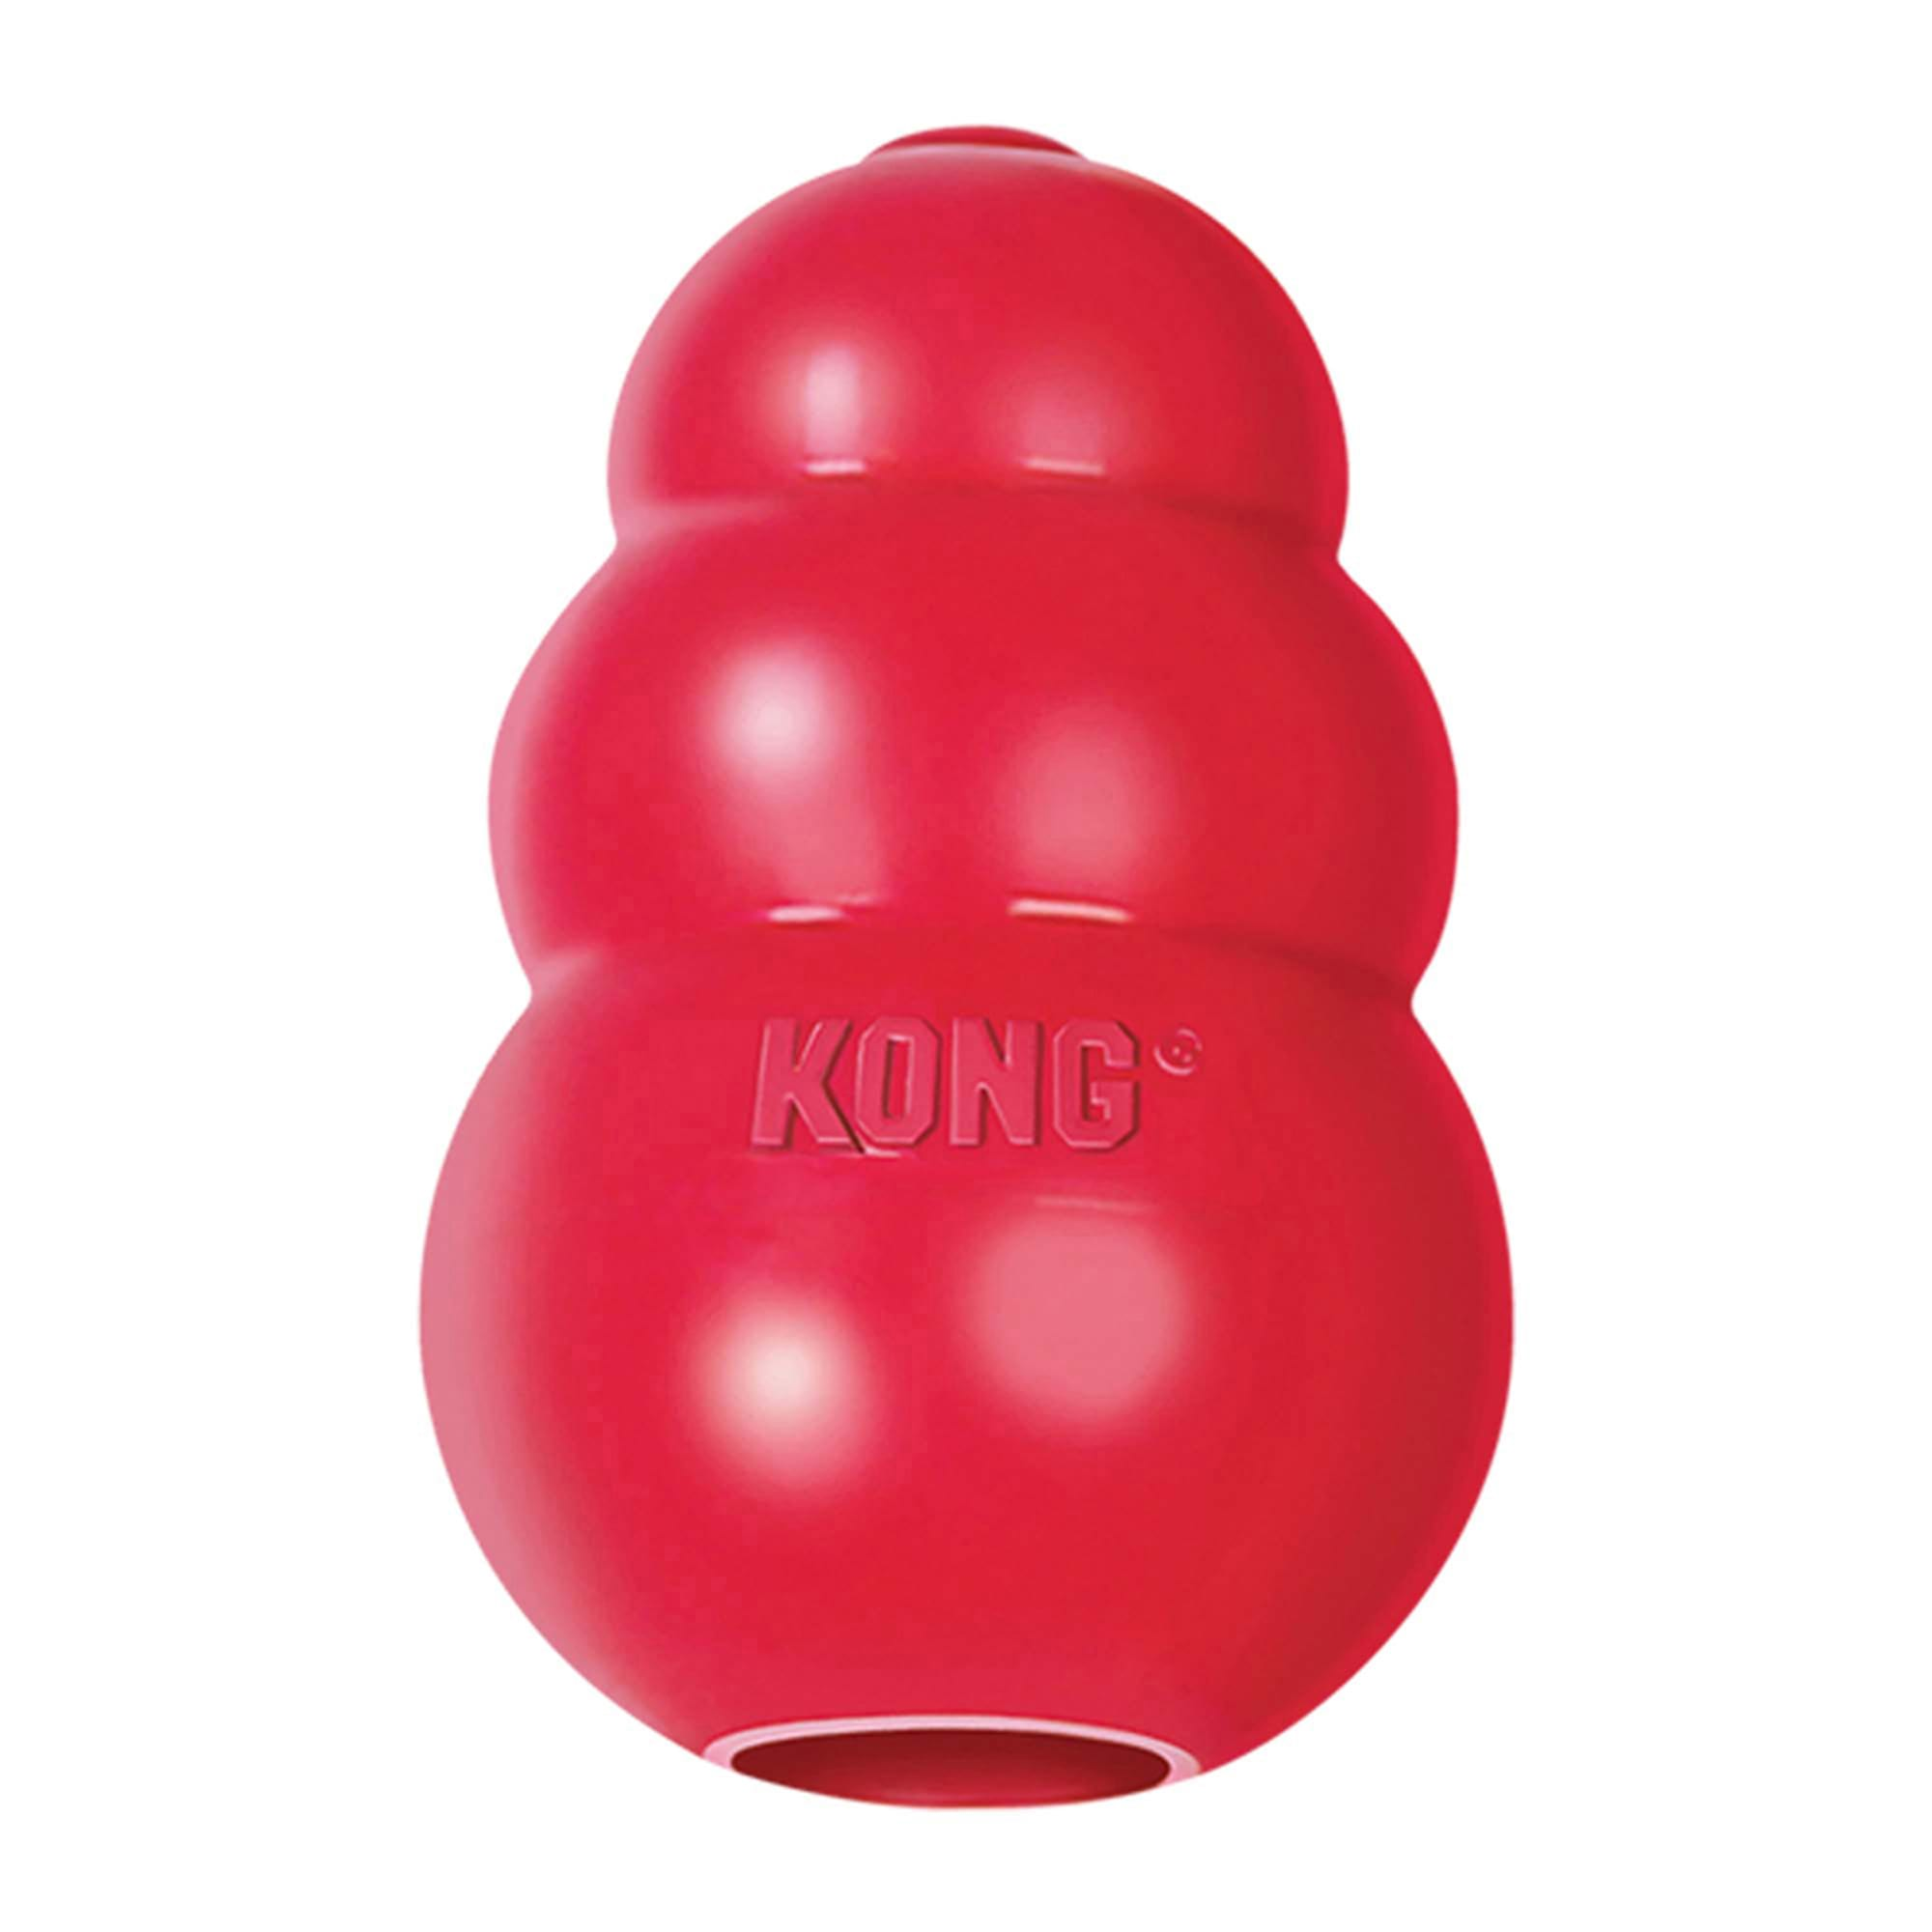 KONG Classic Dog Toy, X-Small